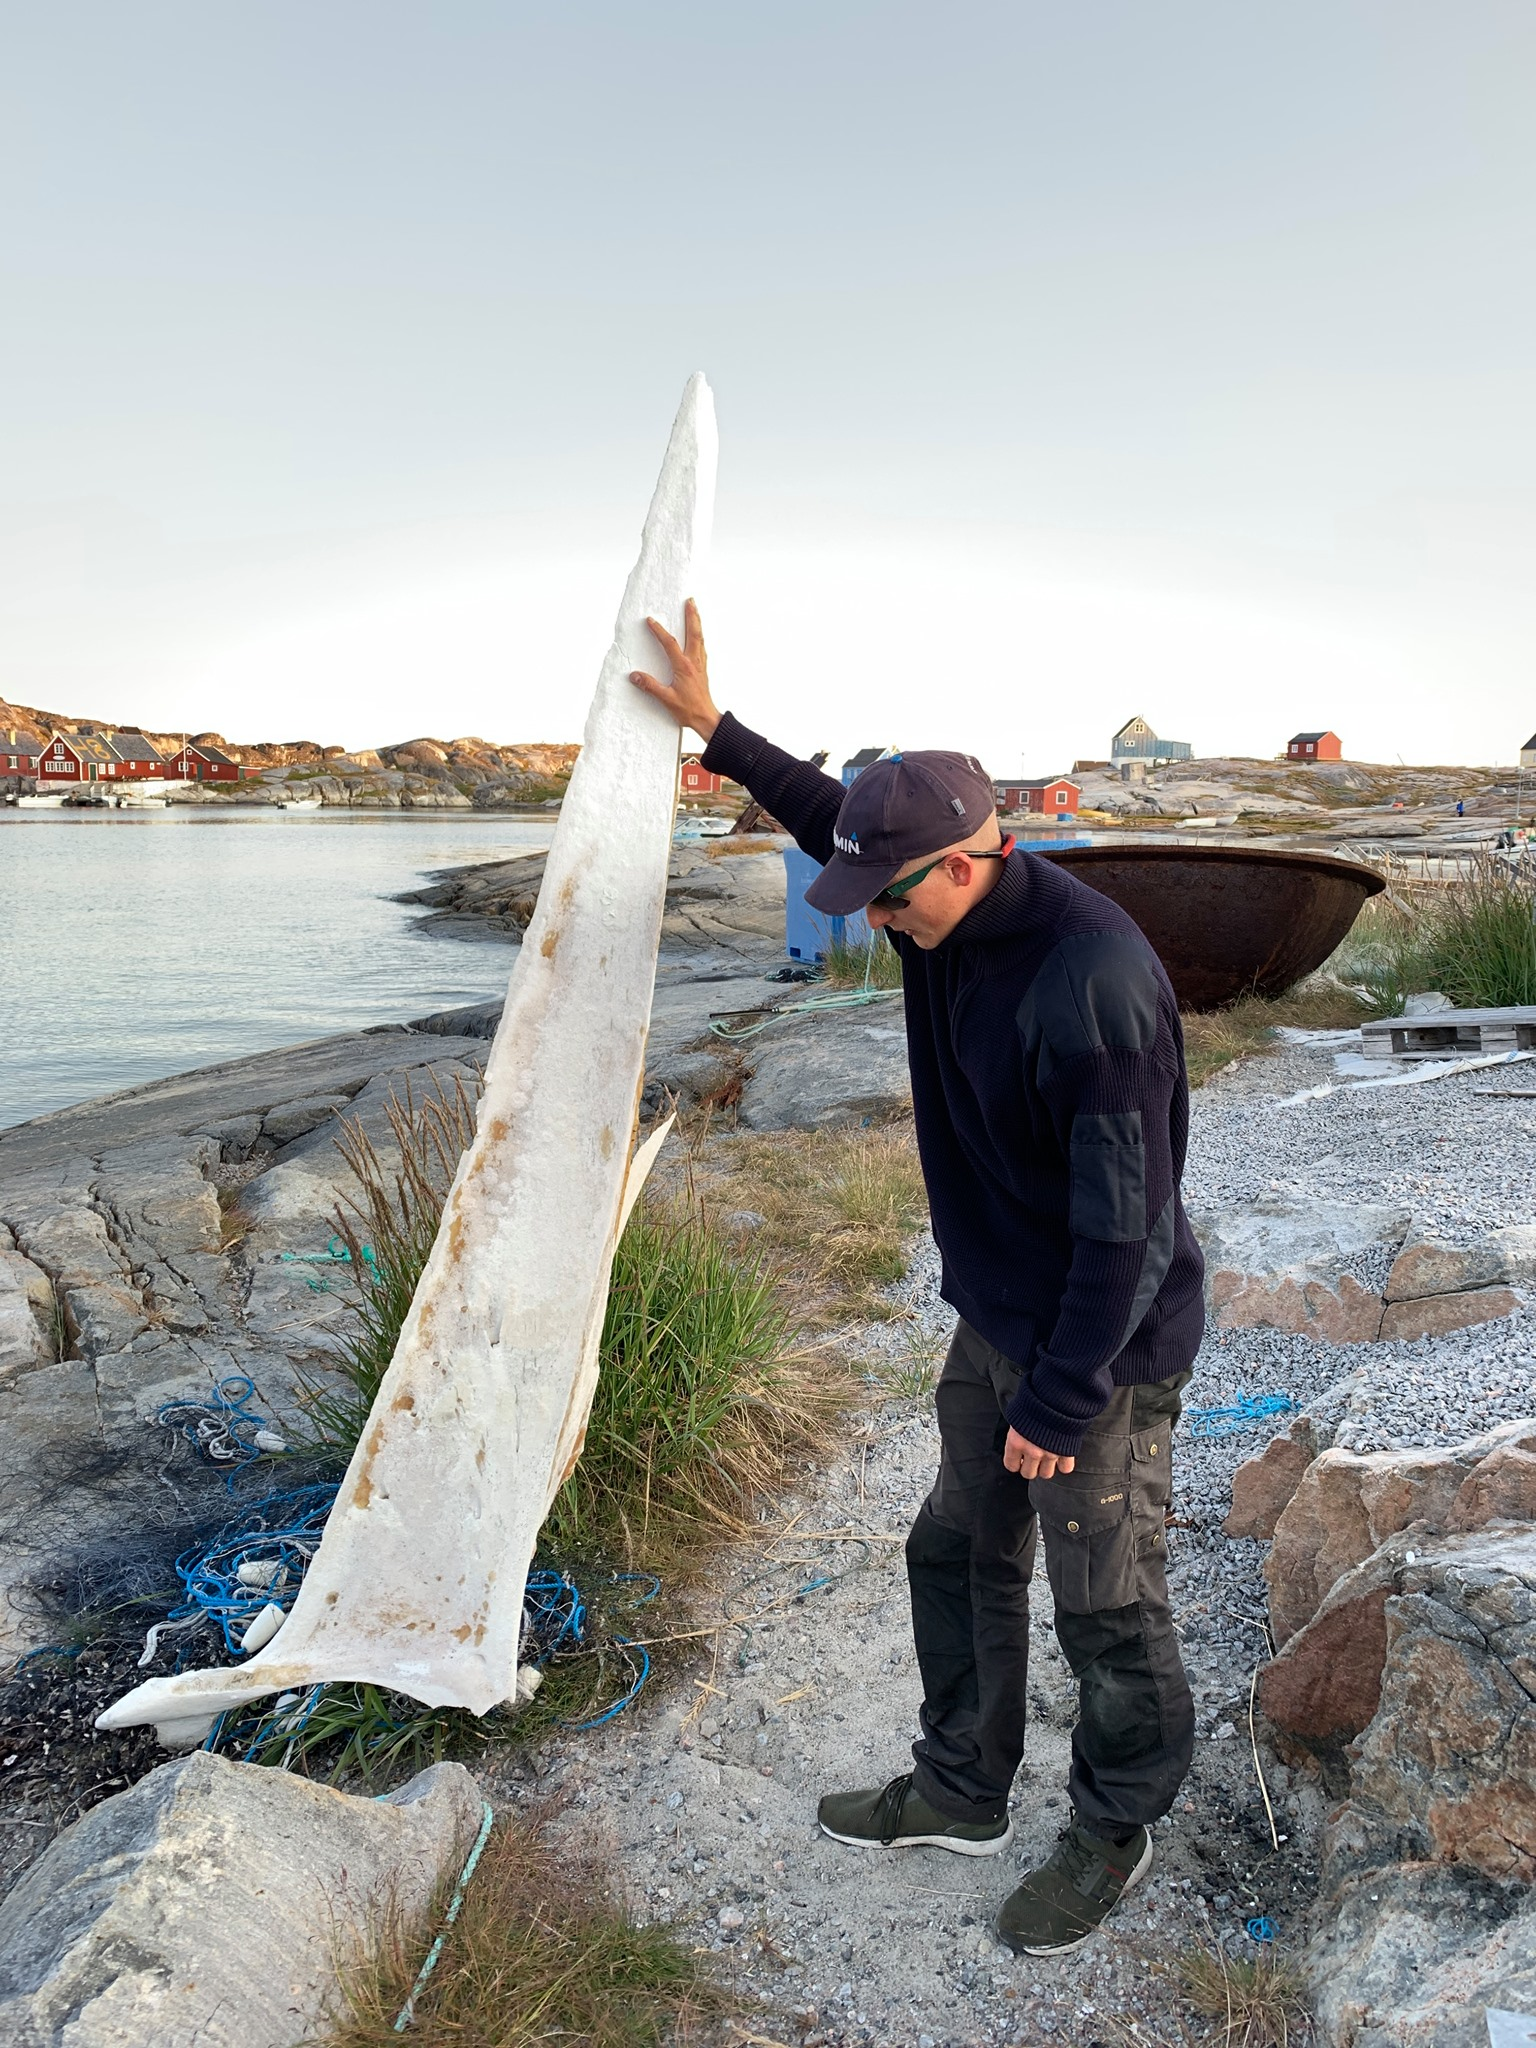 The first mate holding up a whale jawbone in Oqaatsut (Rodebaai).